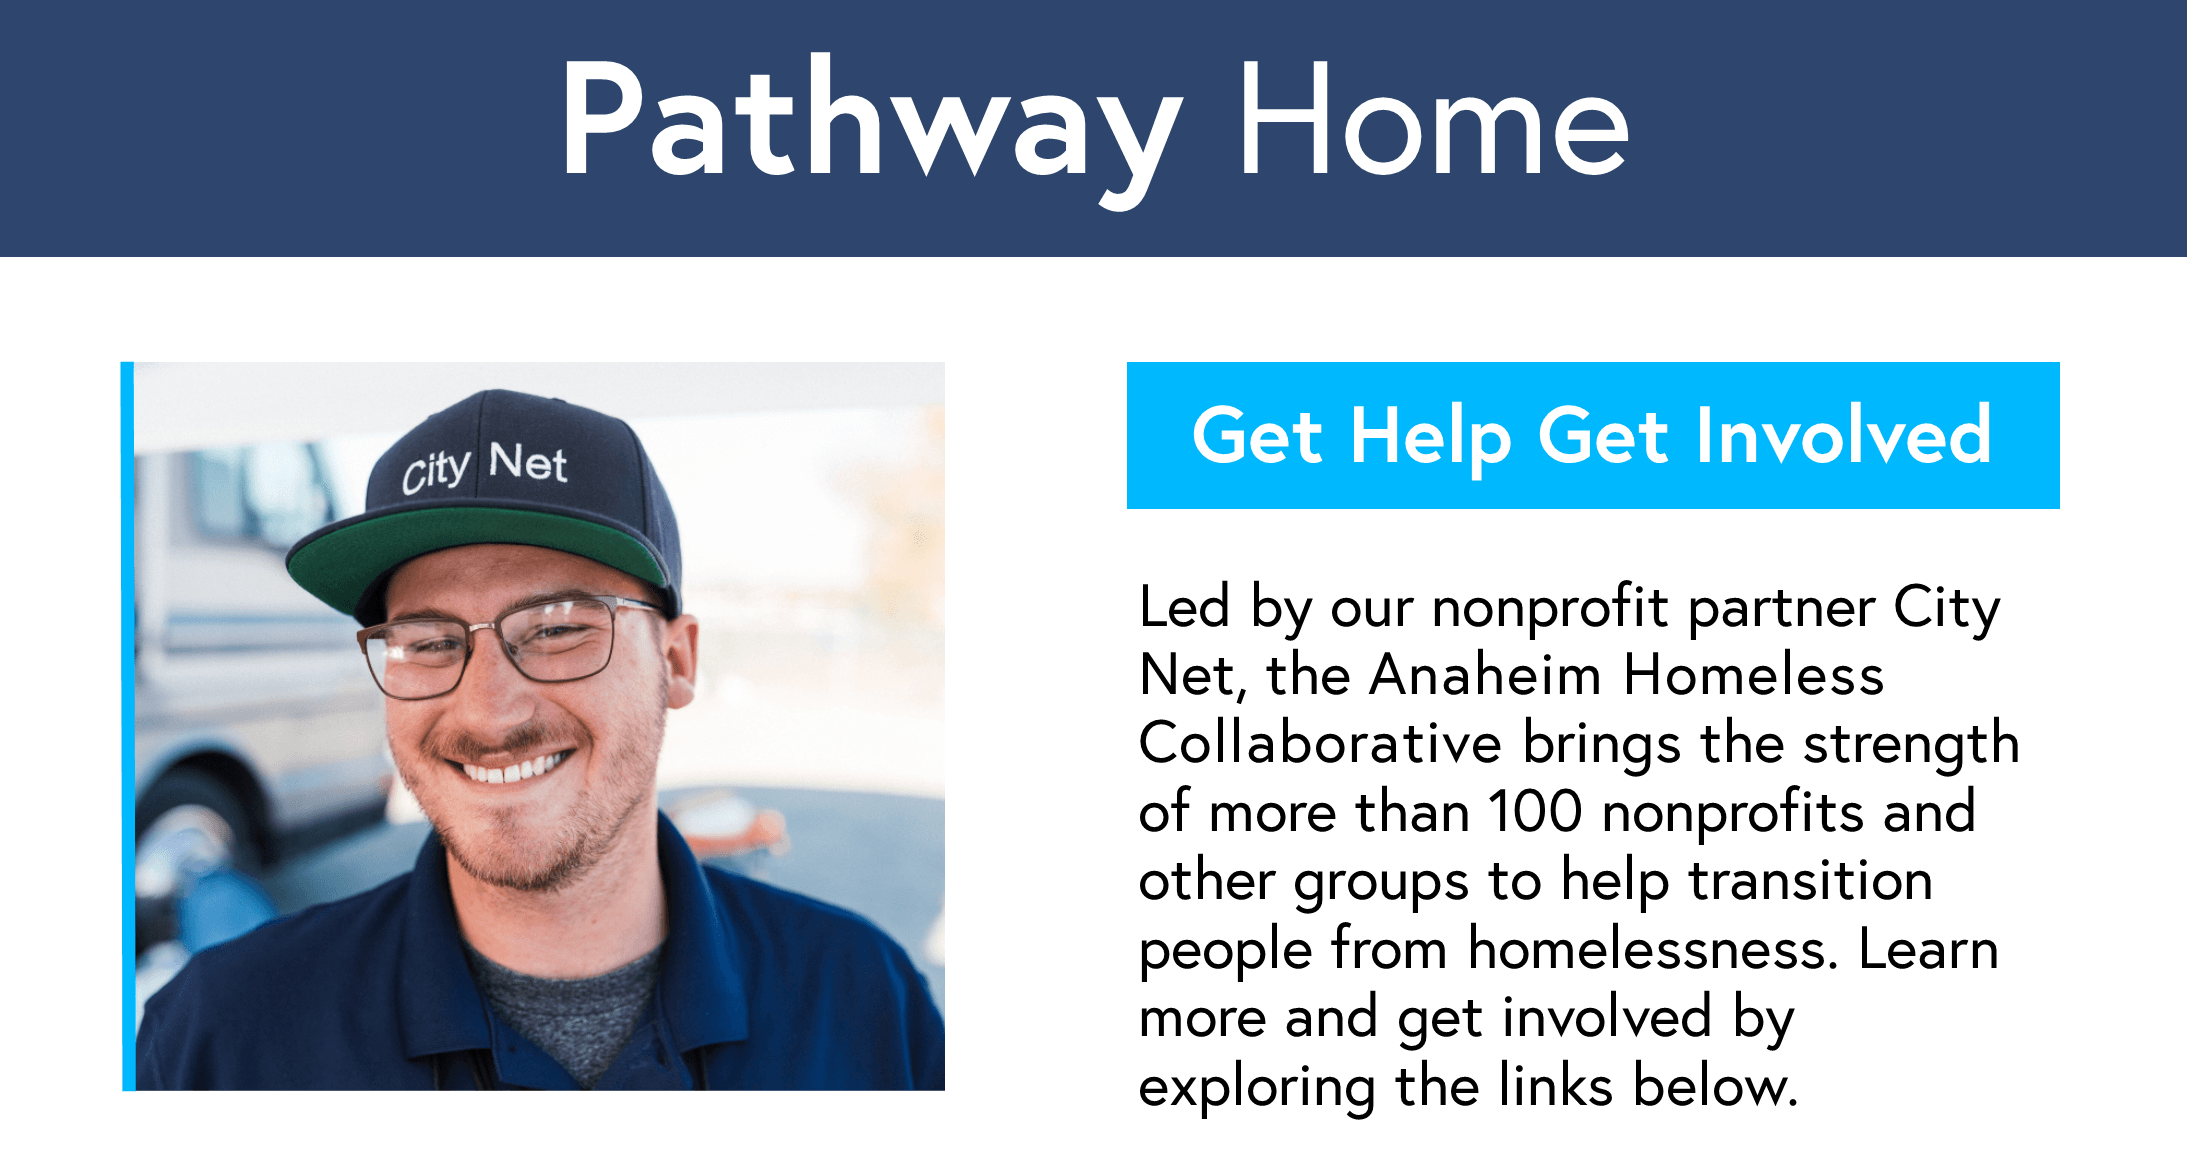 Path home get help get involved